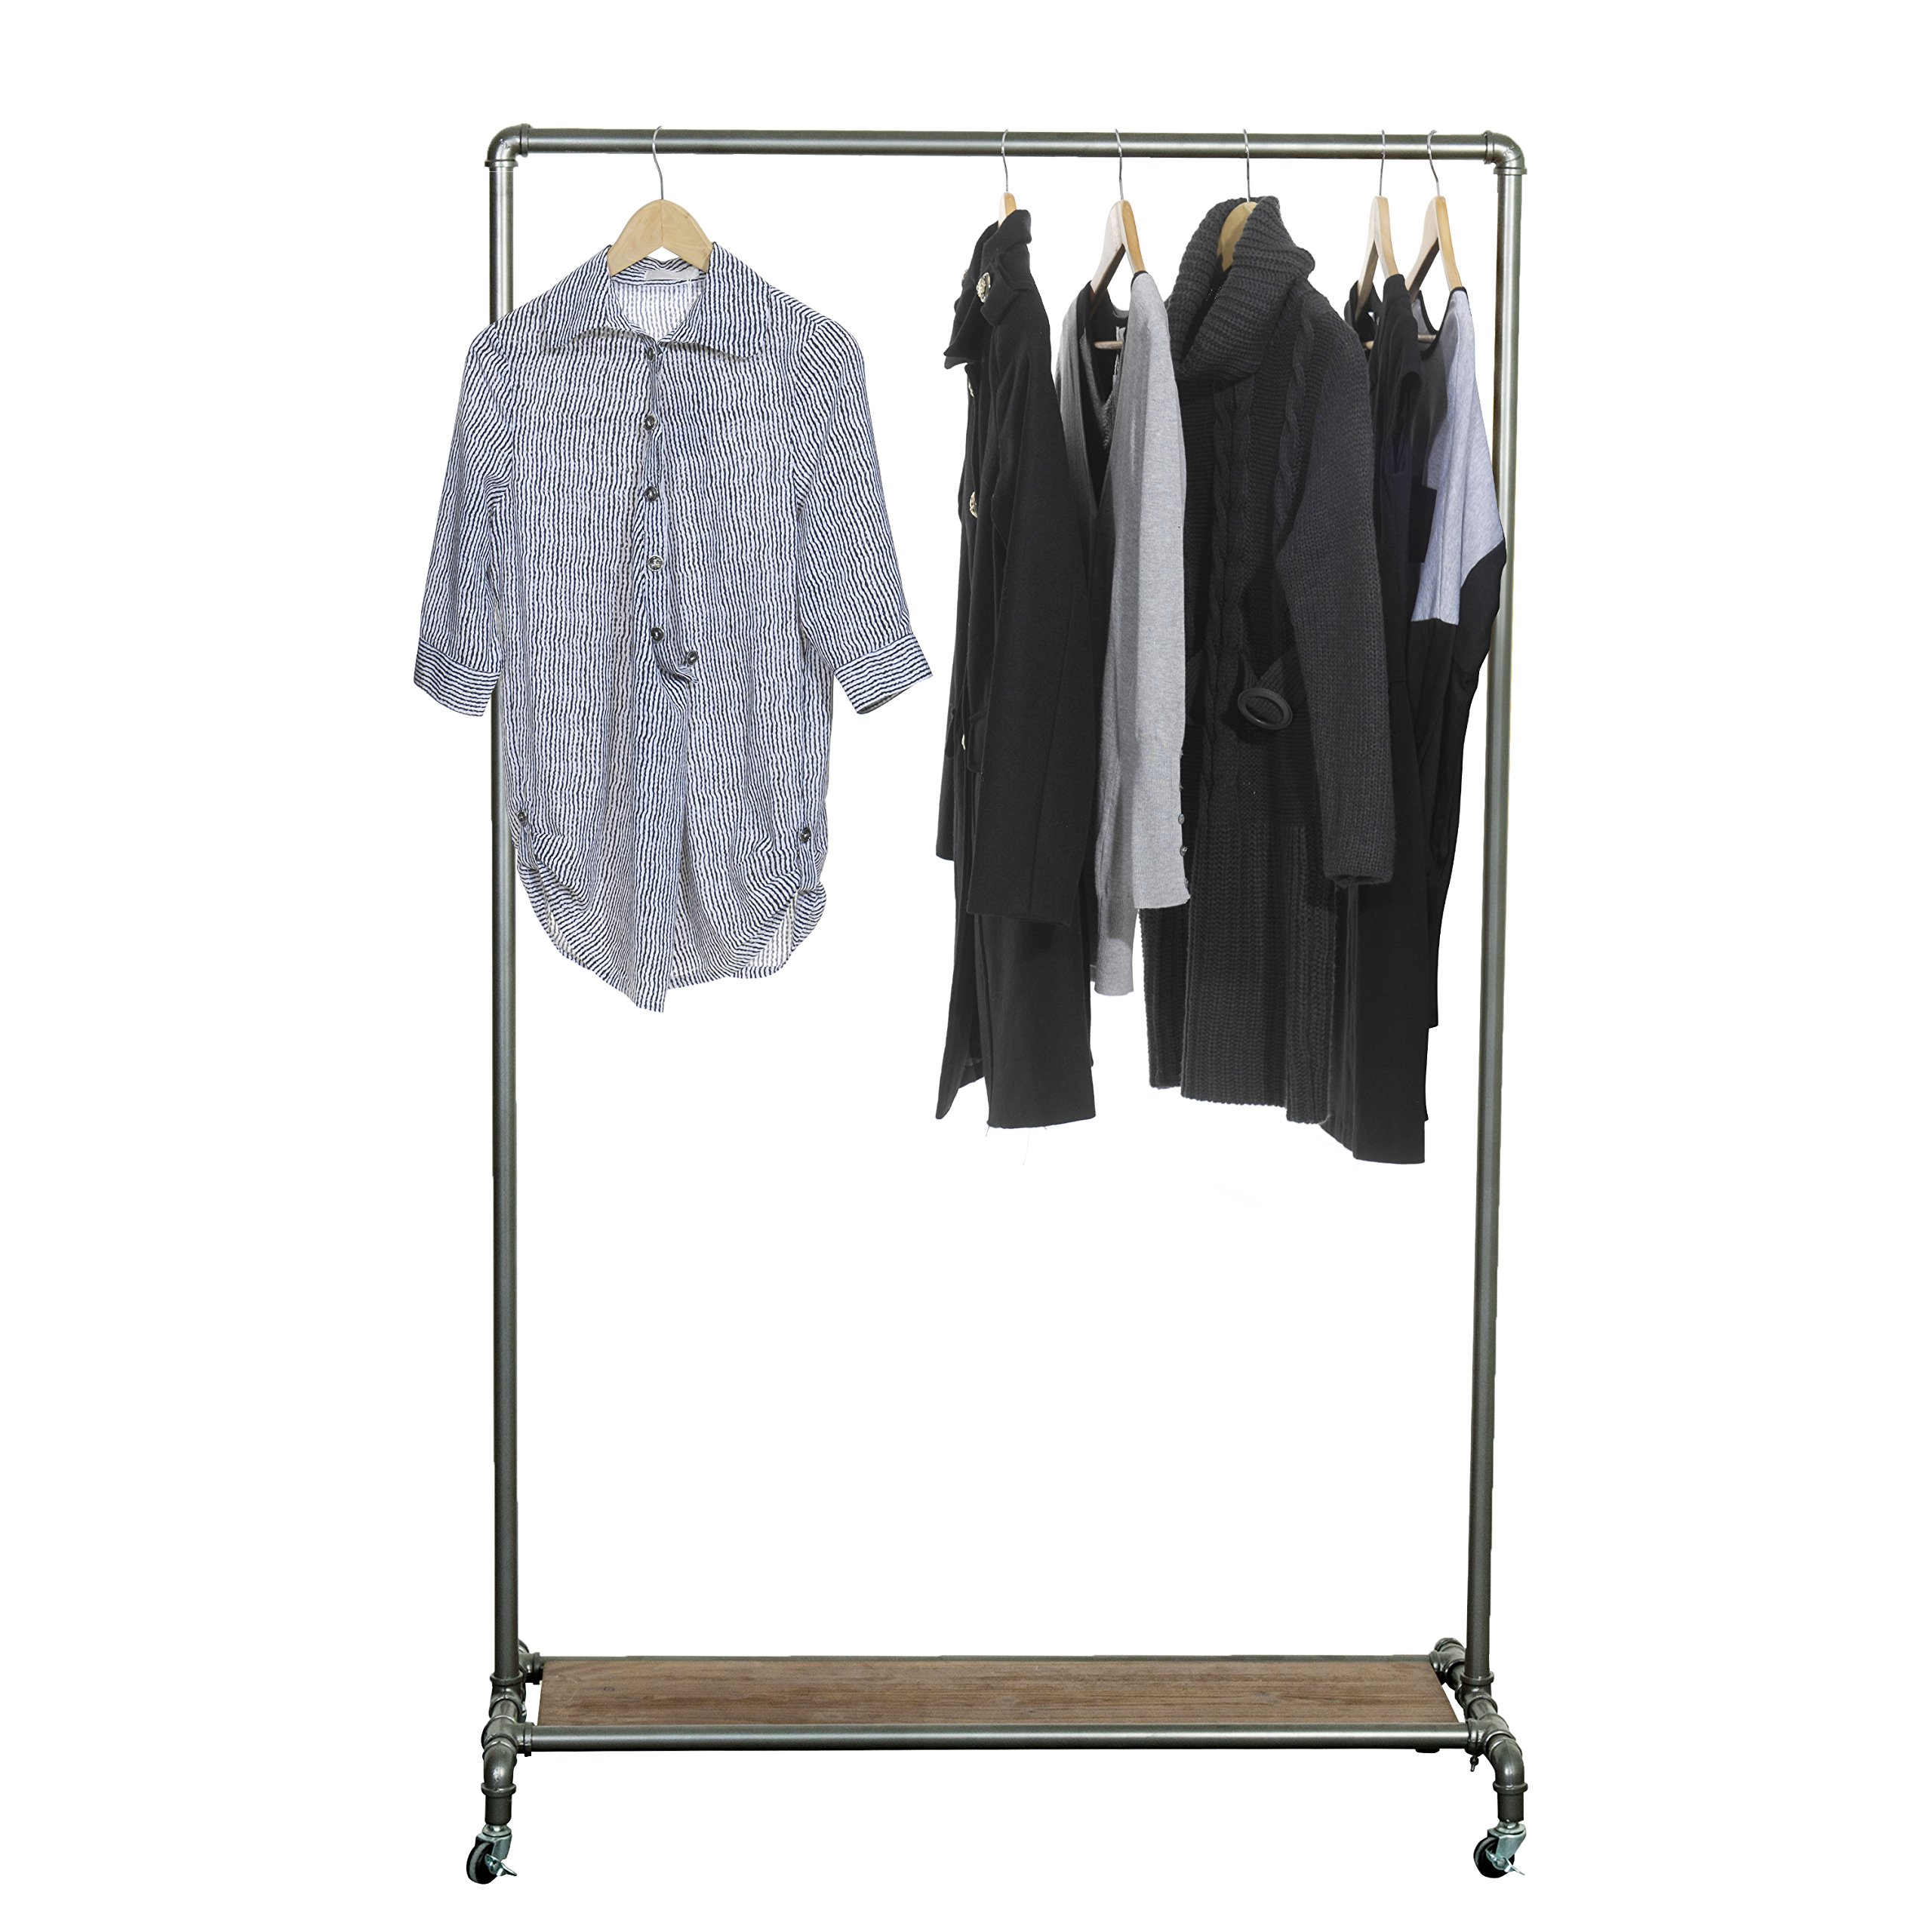 MyGift 65-inch Industrial Pipe Rolling Garment Rack with Wooden Shelf & Lockable Caster Wheels